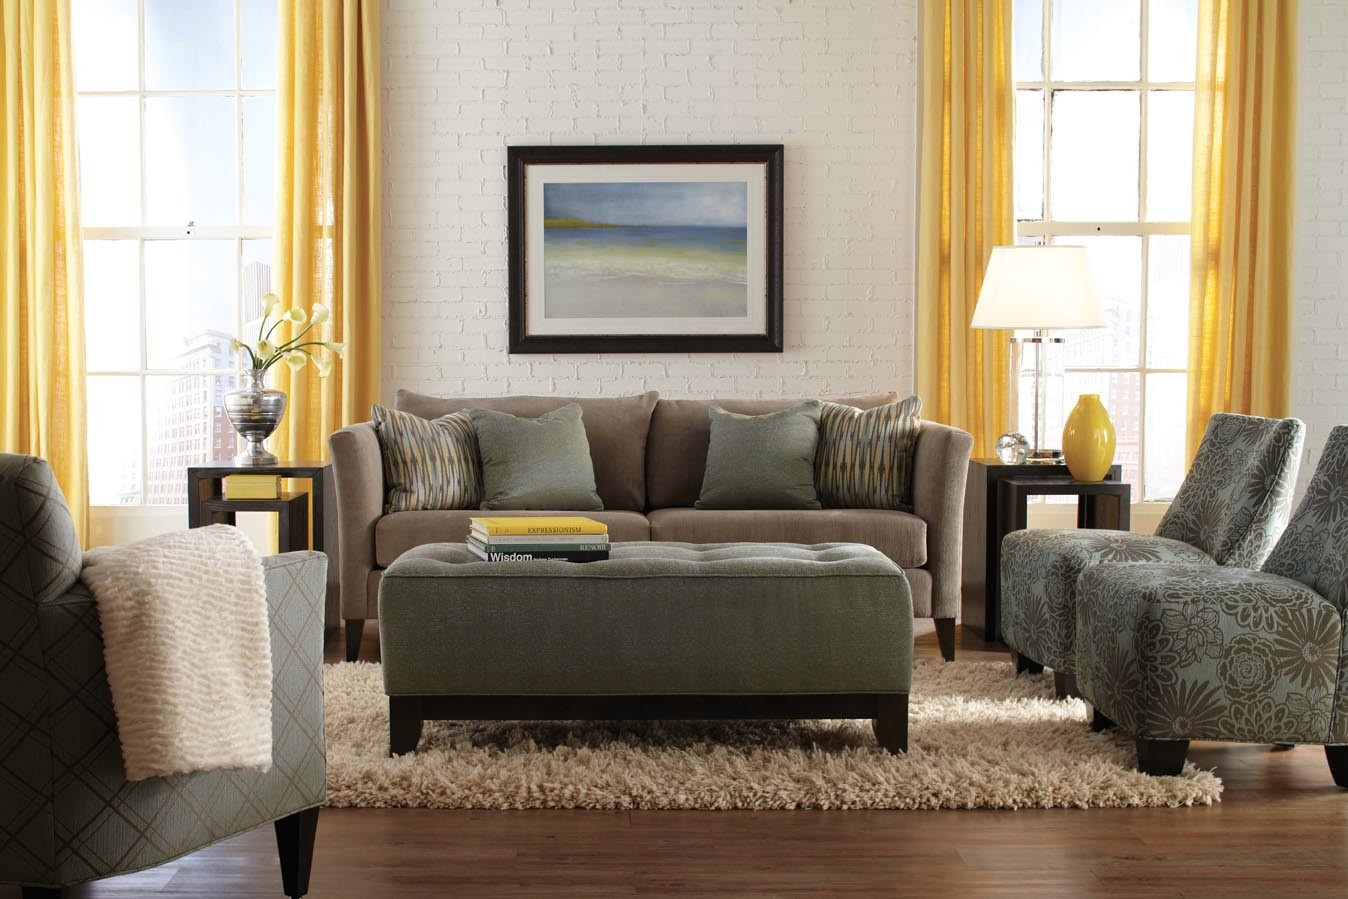 Contemporary And Modern Furniture Home Decor And Accessories